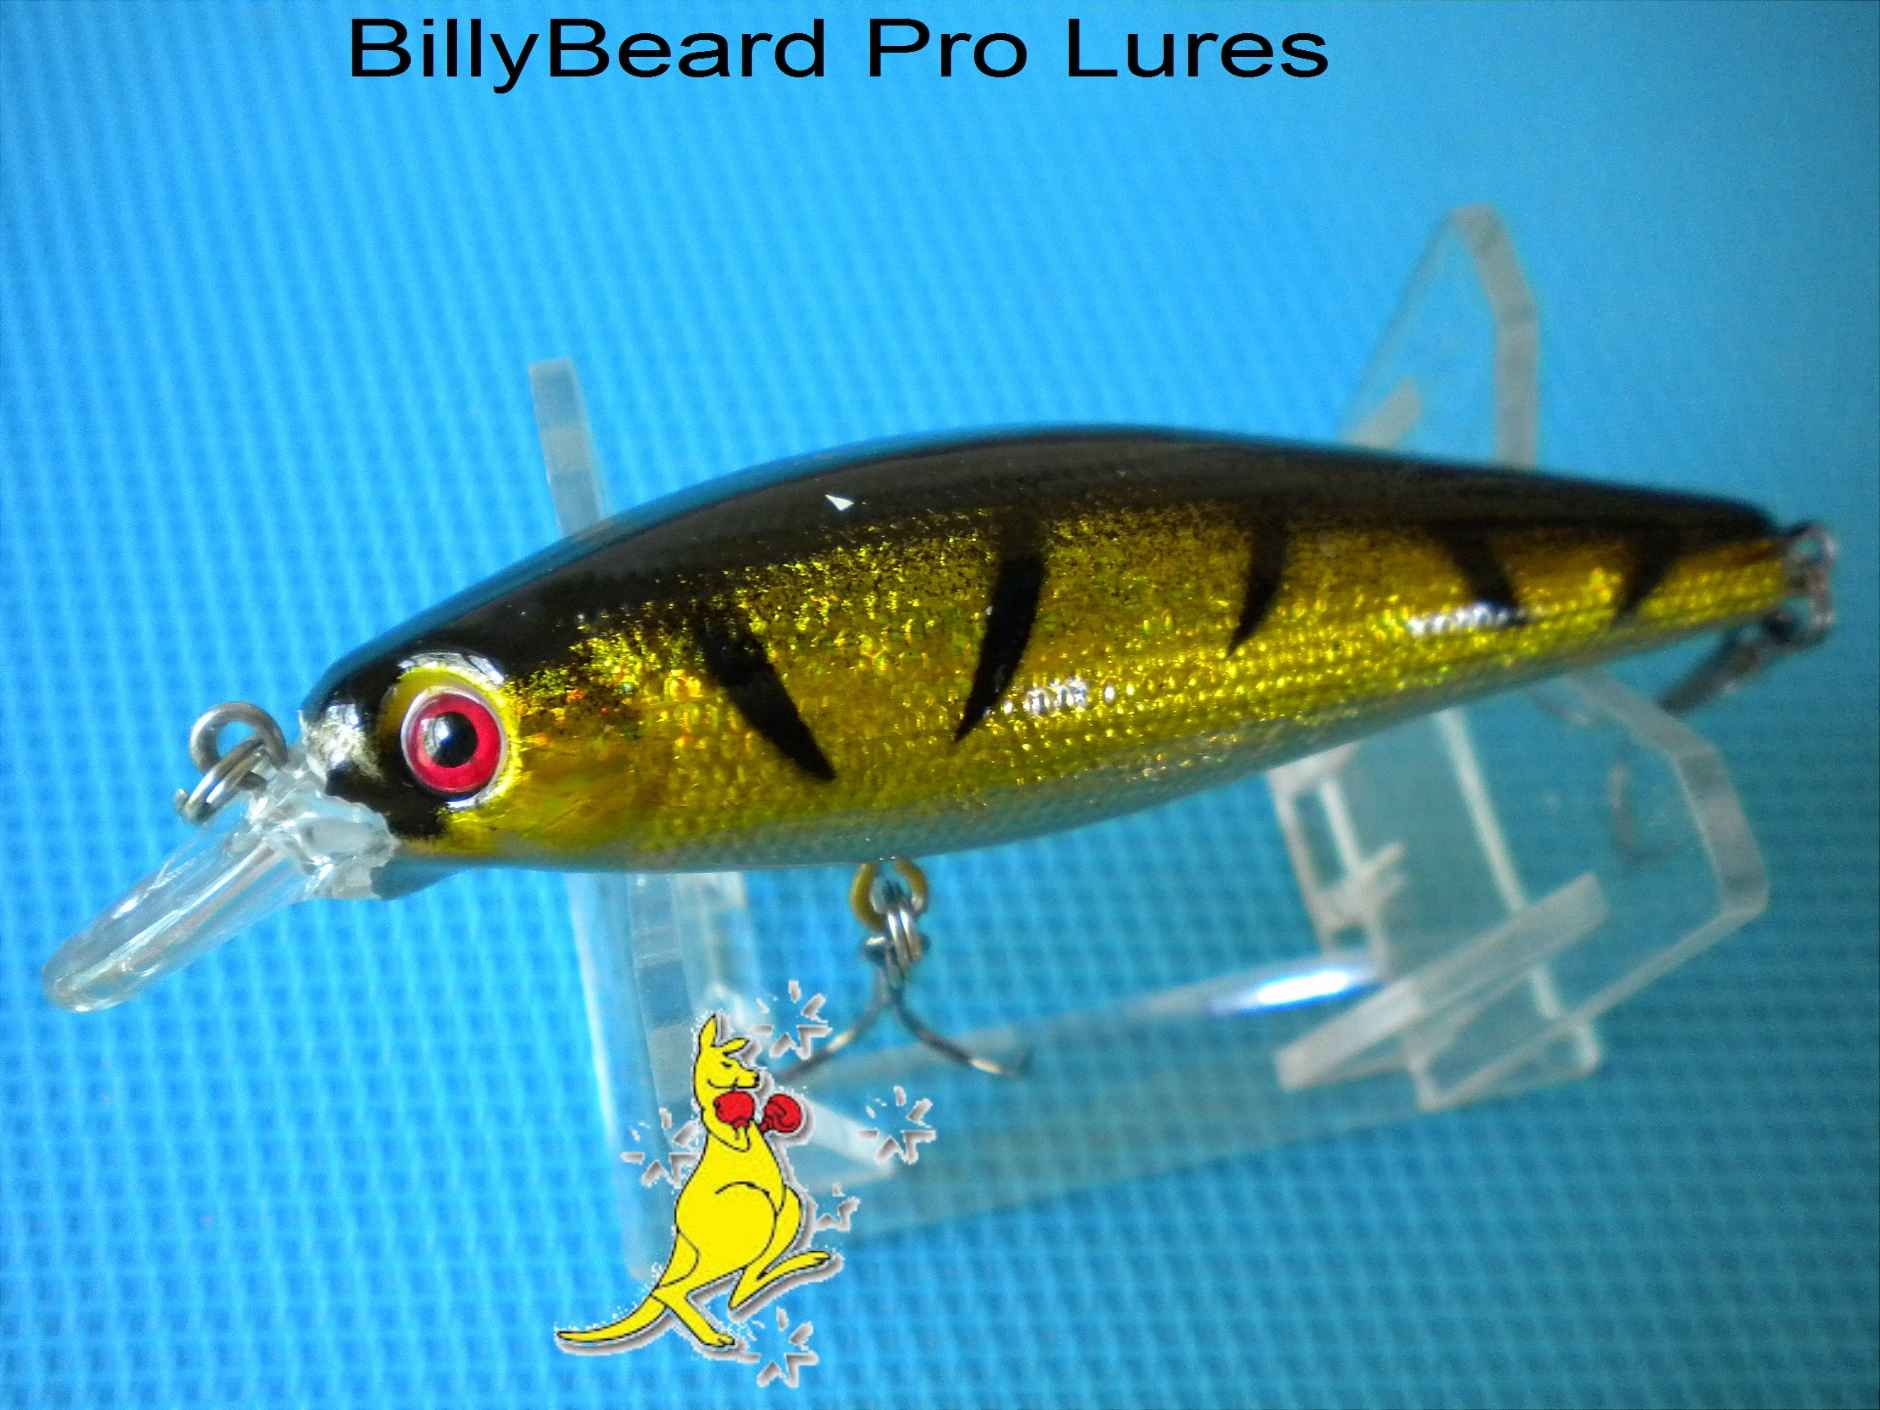 Swapmeet 1x 85mm lazer shad bream bass barra trout perch for Perch fishing lures